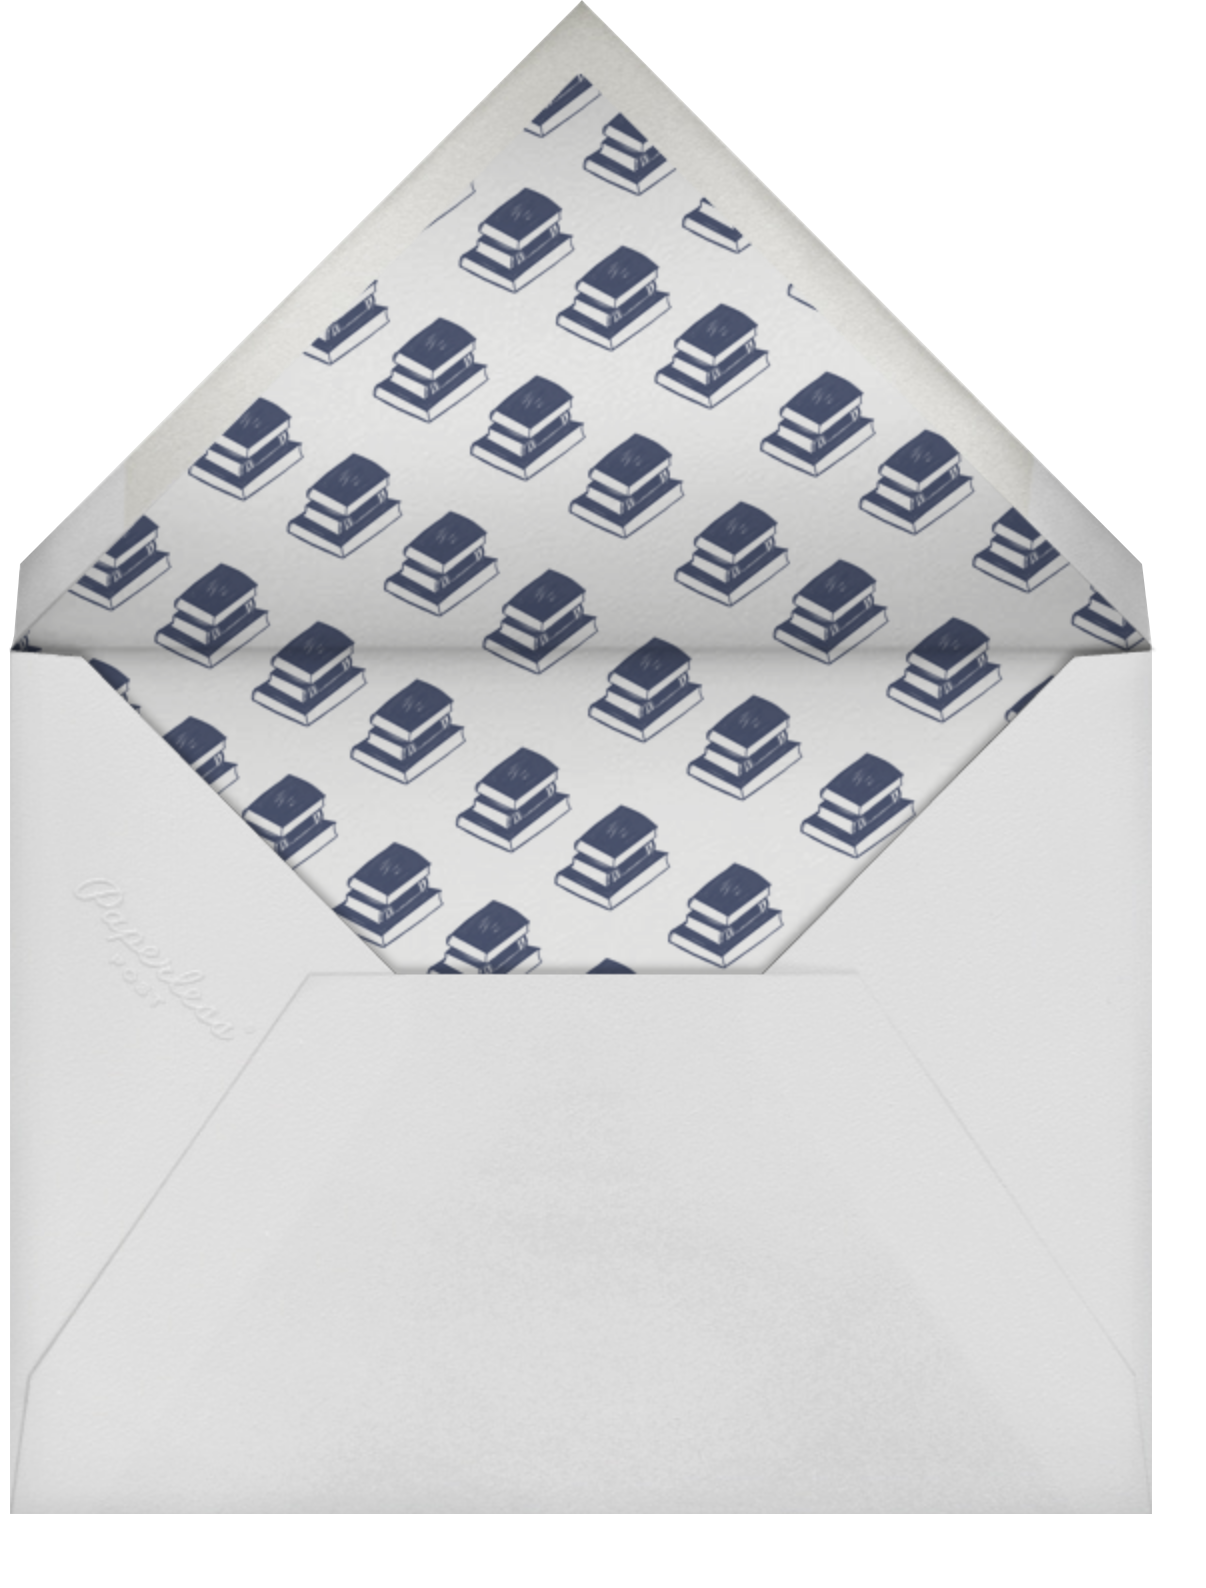 Photo Booth - Fog - Paperless Post - Graduation party - envelope back